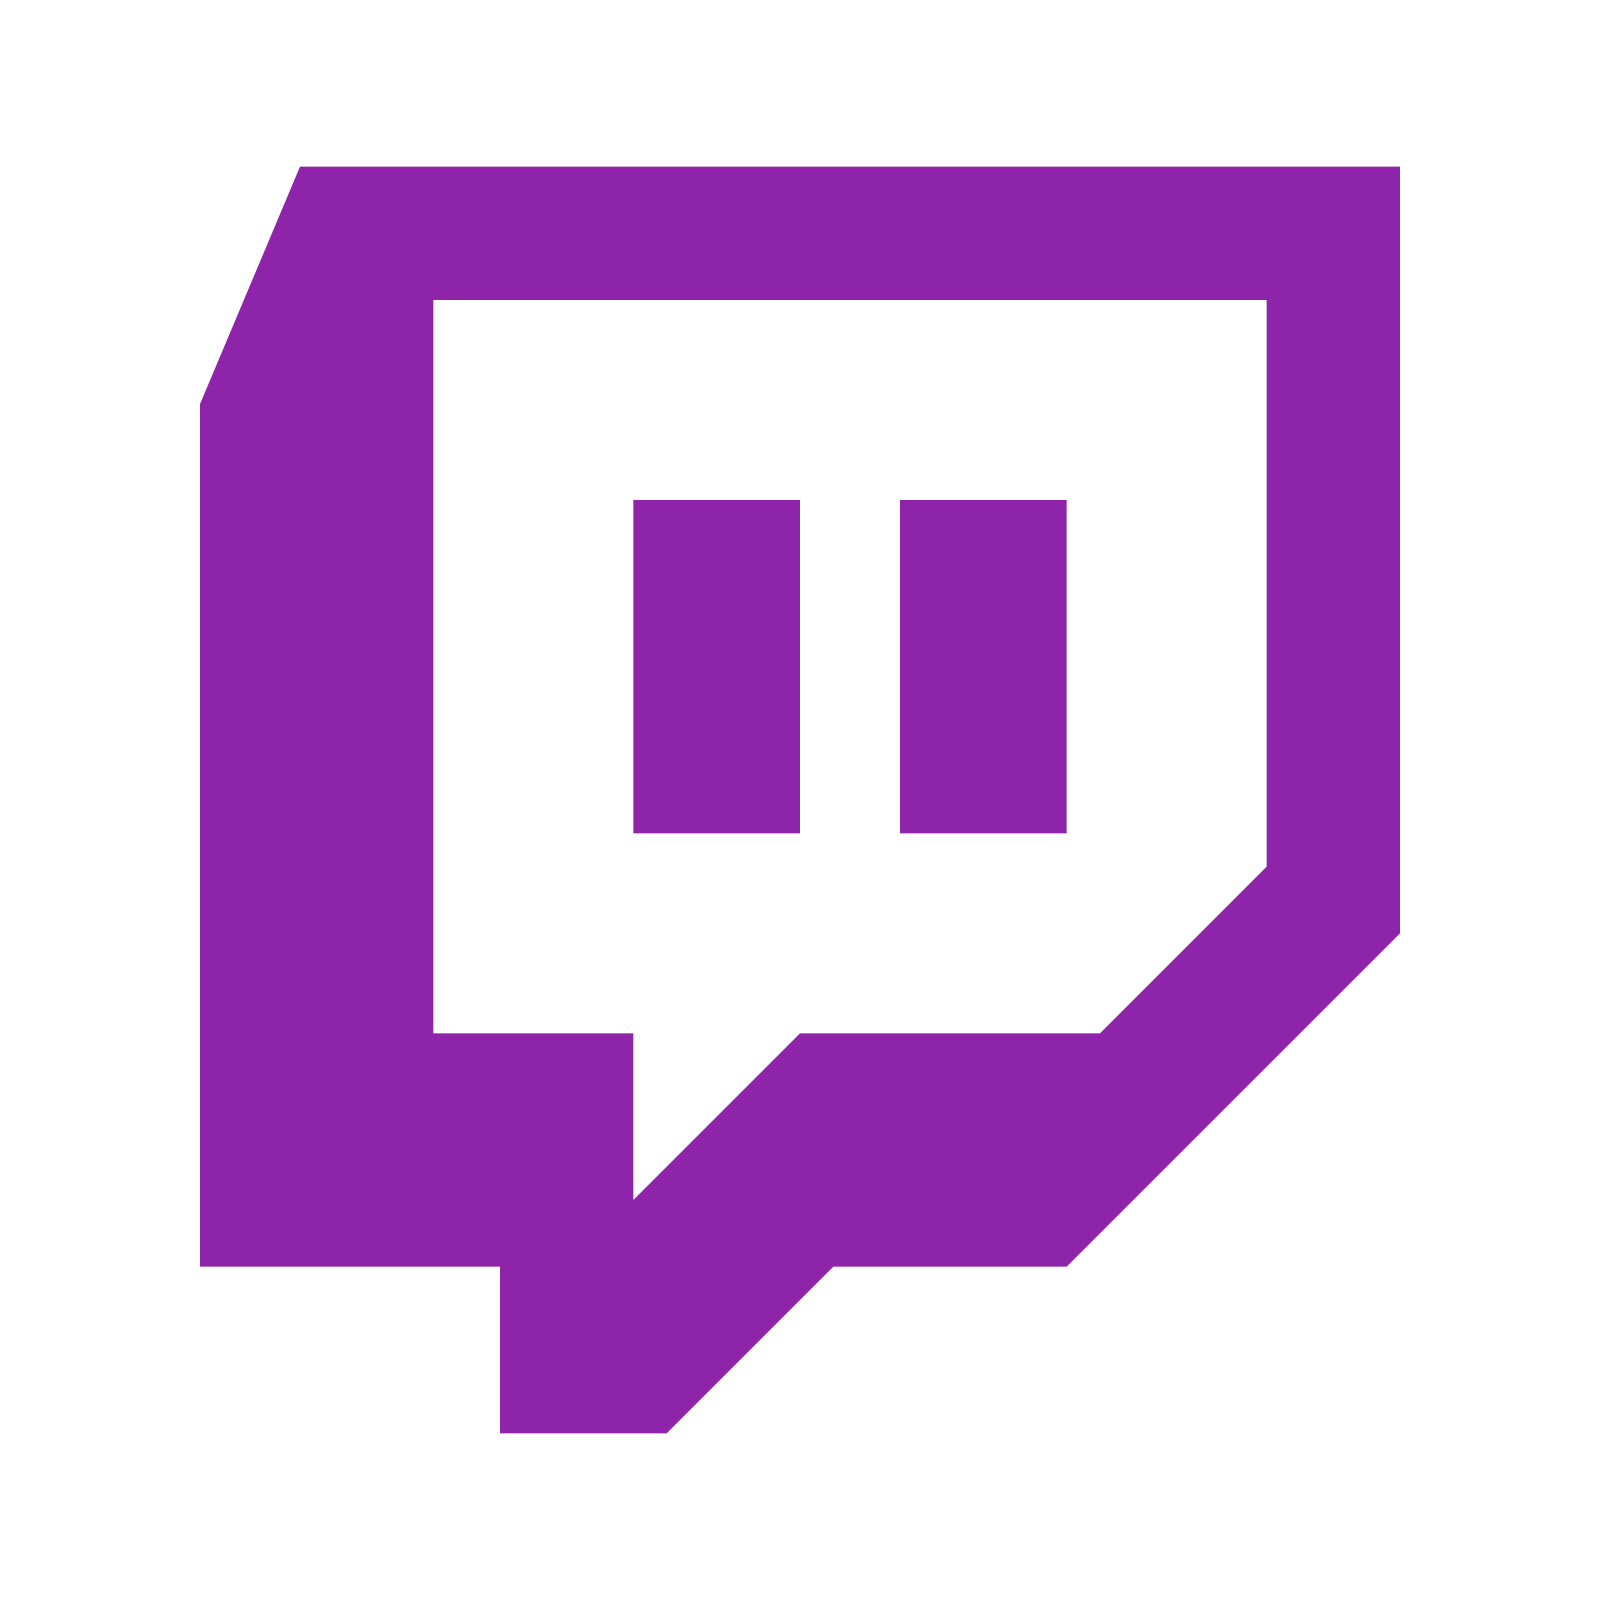 twitch logo vector png   Twitch, Logos, Free social media ...